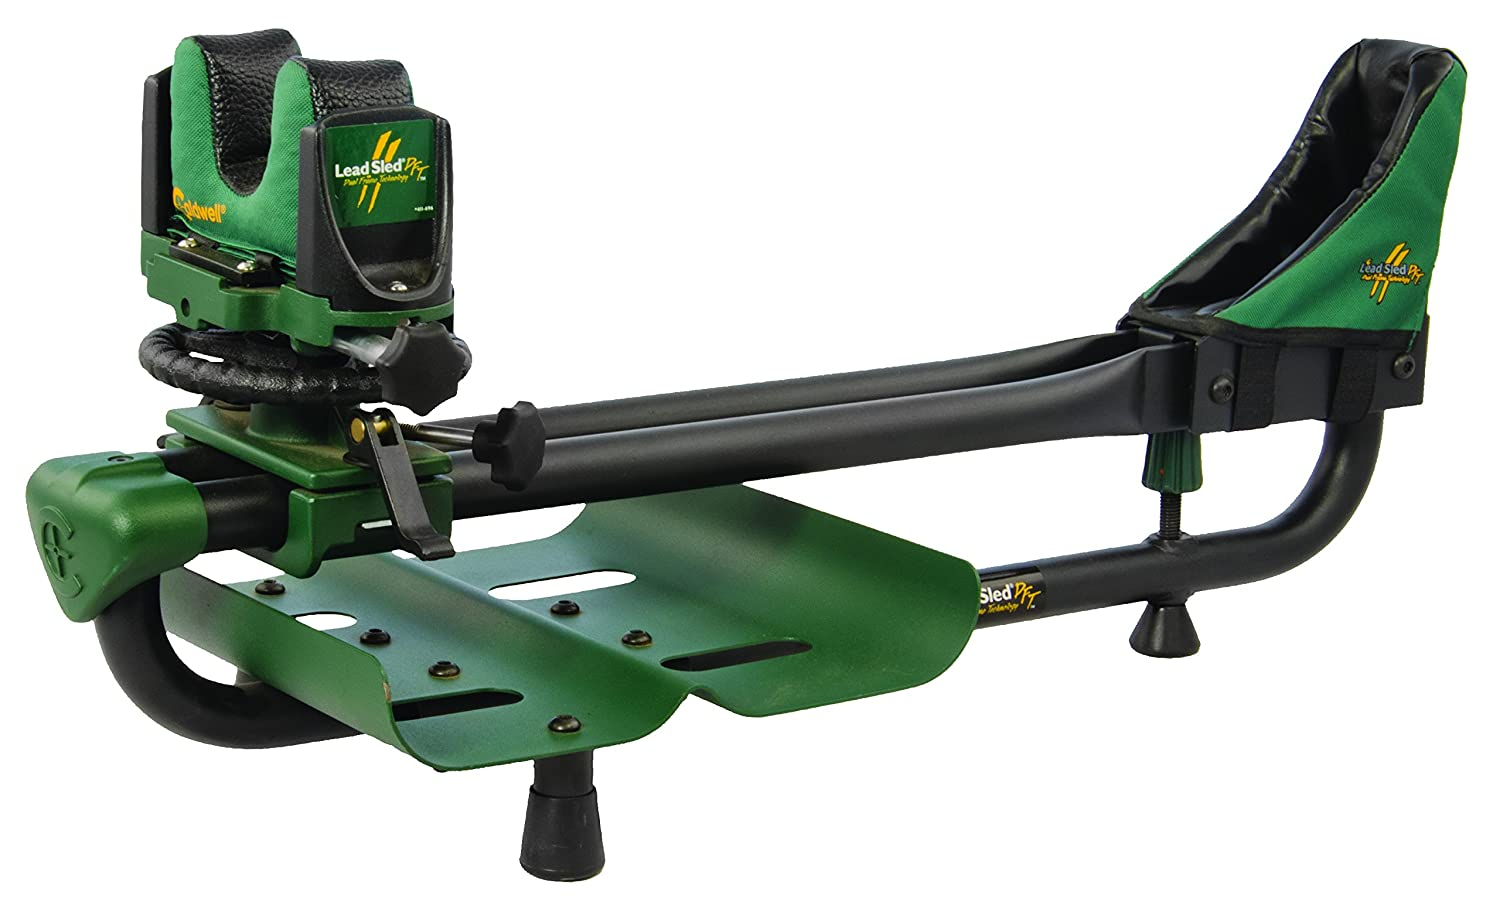 Amazon.com: Caldwell Lead Sled DFT: Sports & Outdoors